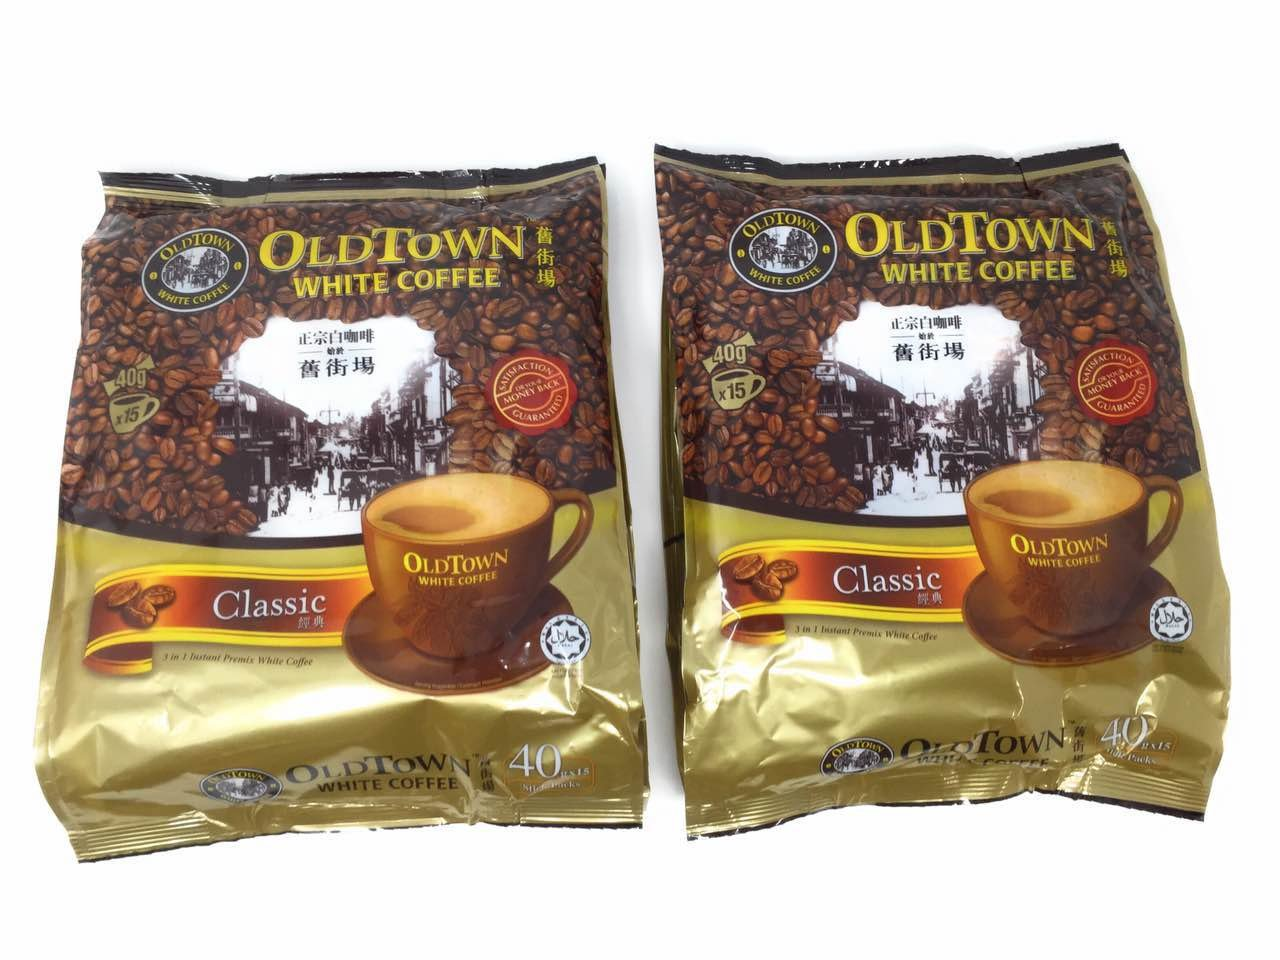 OLD TOWN 3 in 1 Classic White Coffee, 21.2 Ounce (2 Pack)